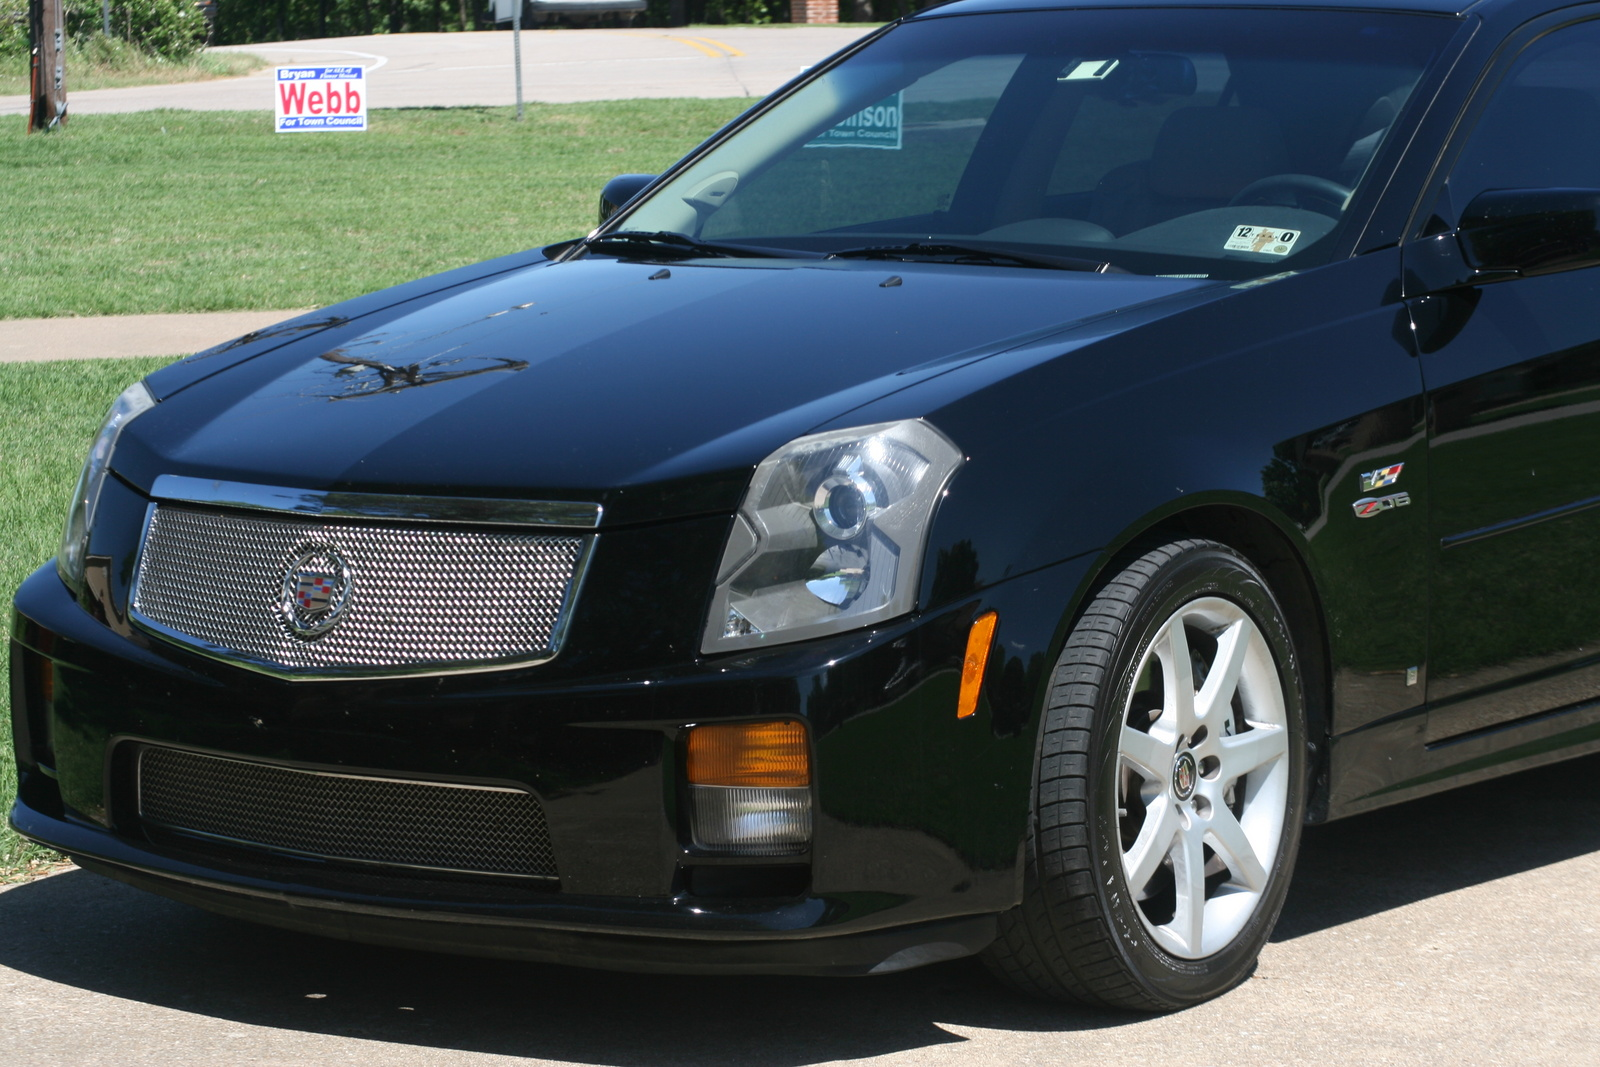 used 2007 cadillac cts pricing edmunds autos post. Black Bedroom Furniture Sets. Home Design Ideas